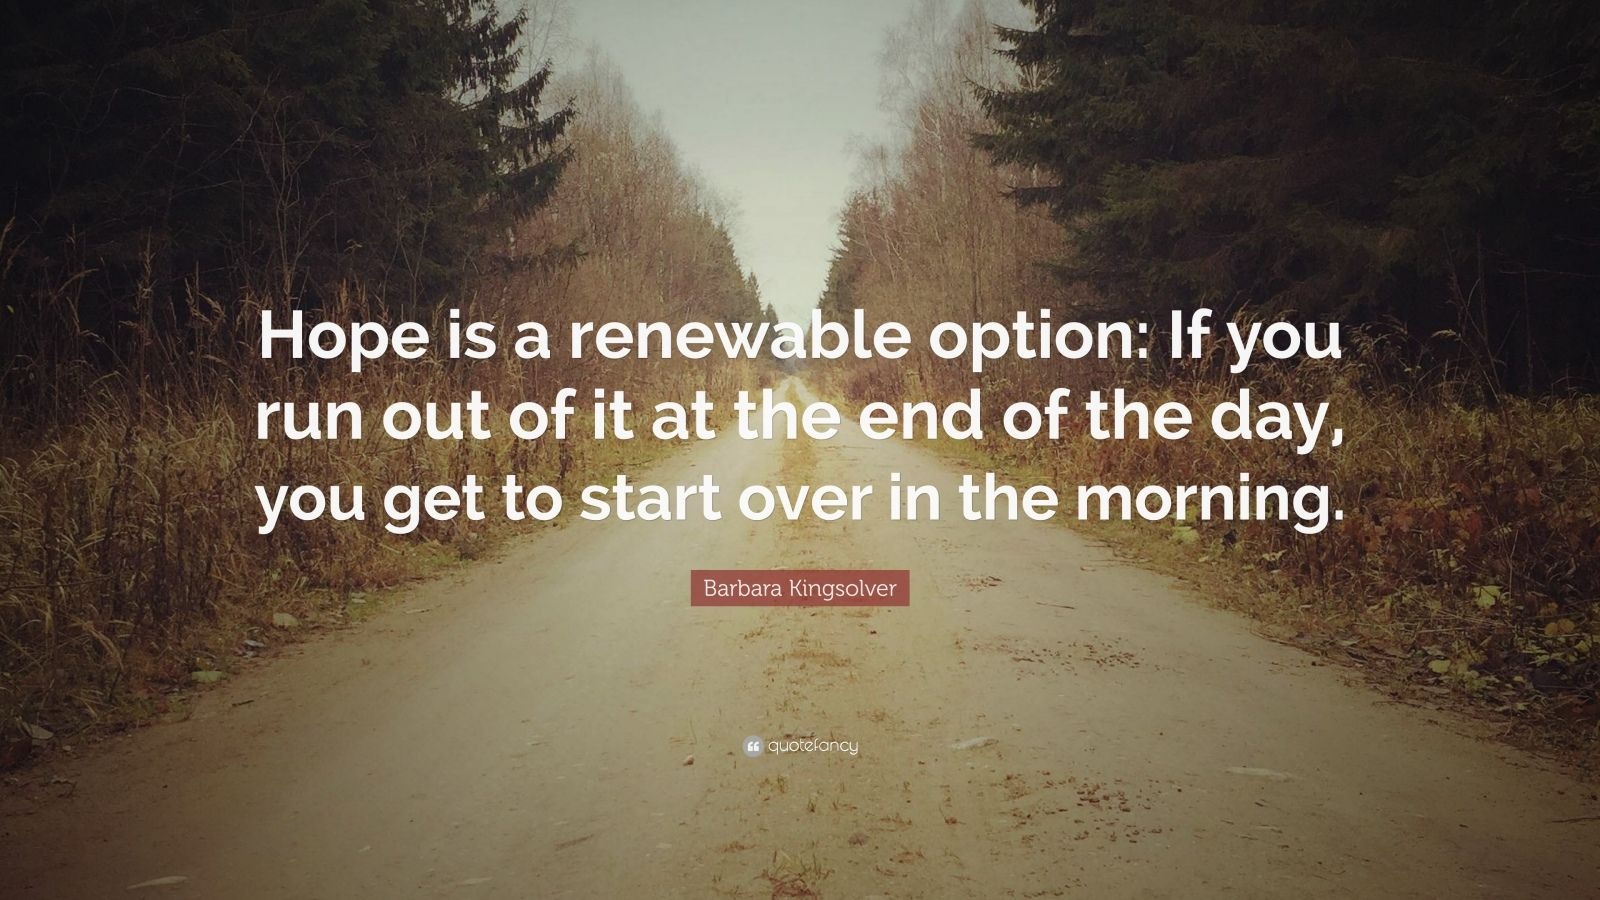 """Barbara Kingsolver Quote: """"Hope is a renewable option: If you run out of it at the end of the day, you get to start over in the morning."""""""